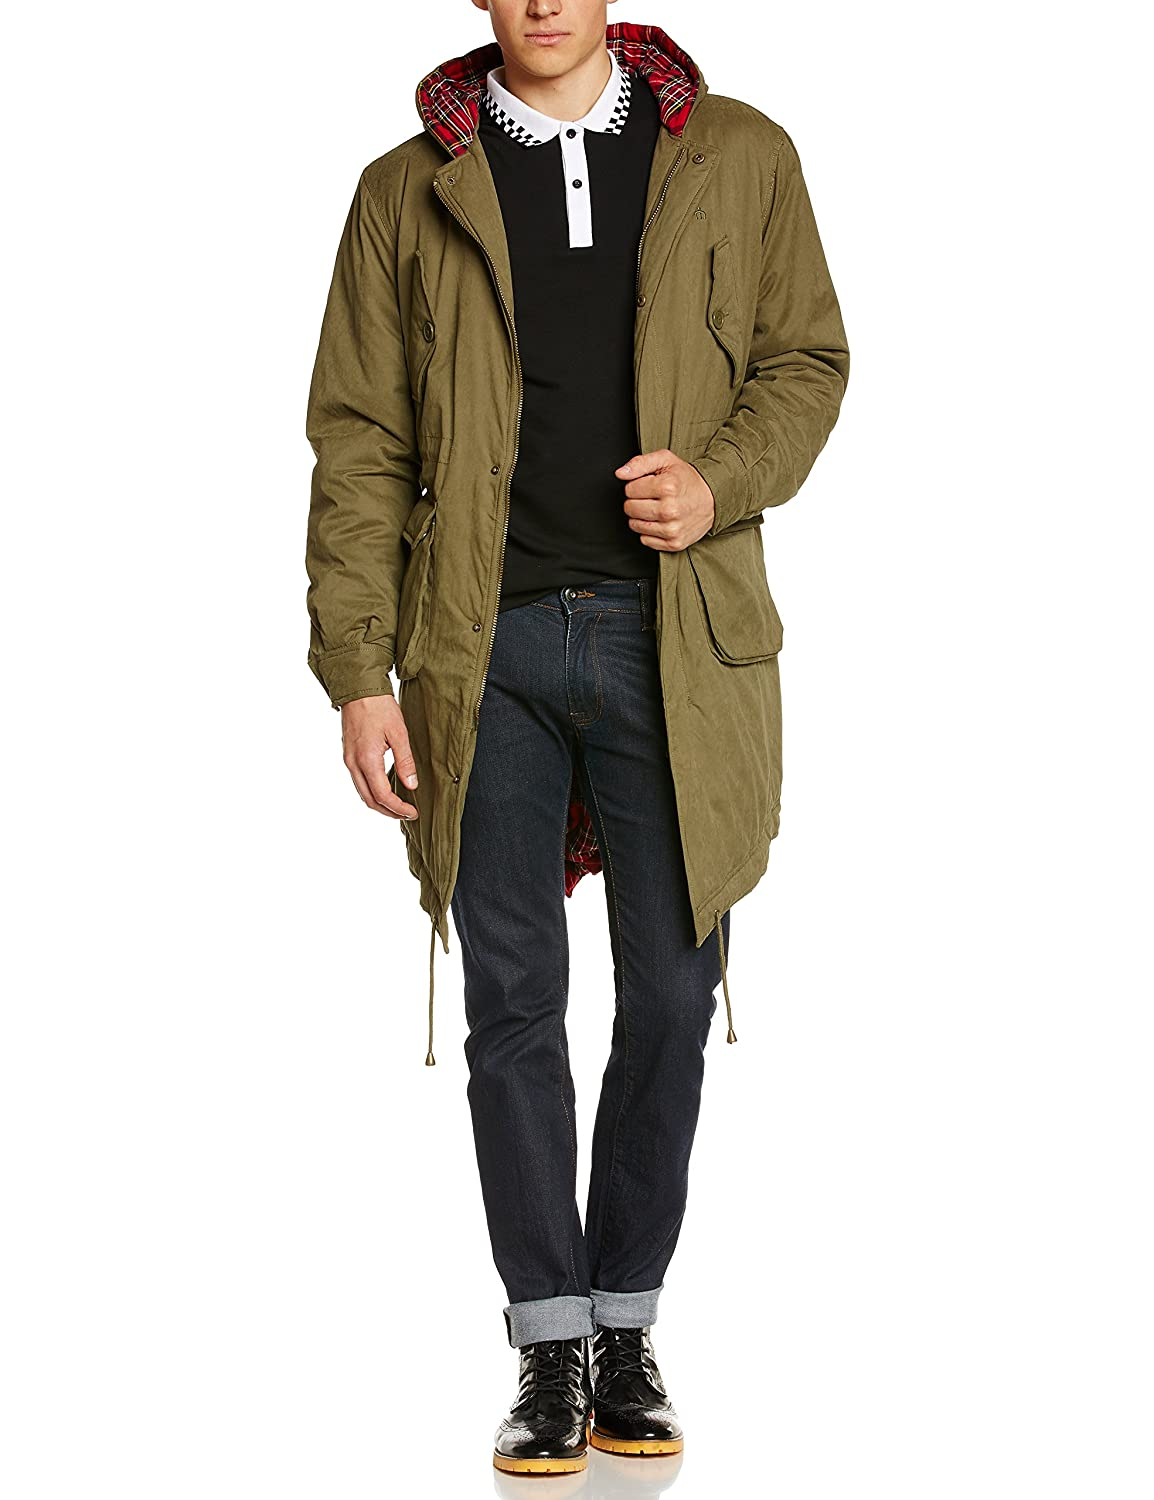 Merc of London Men's Tobias Parka Long Sleeve Coat: Amazon.co.uk ...